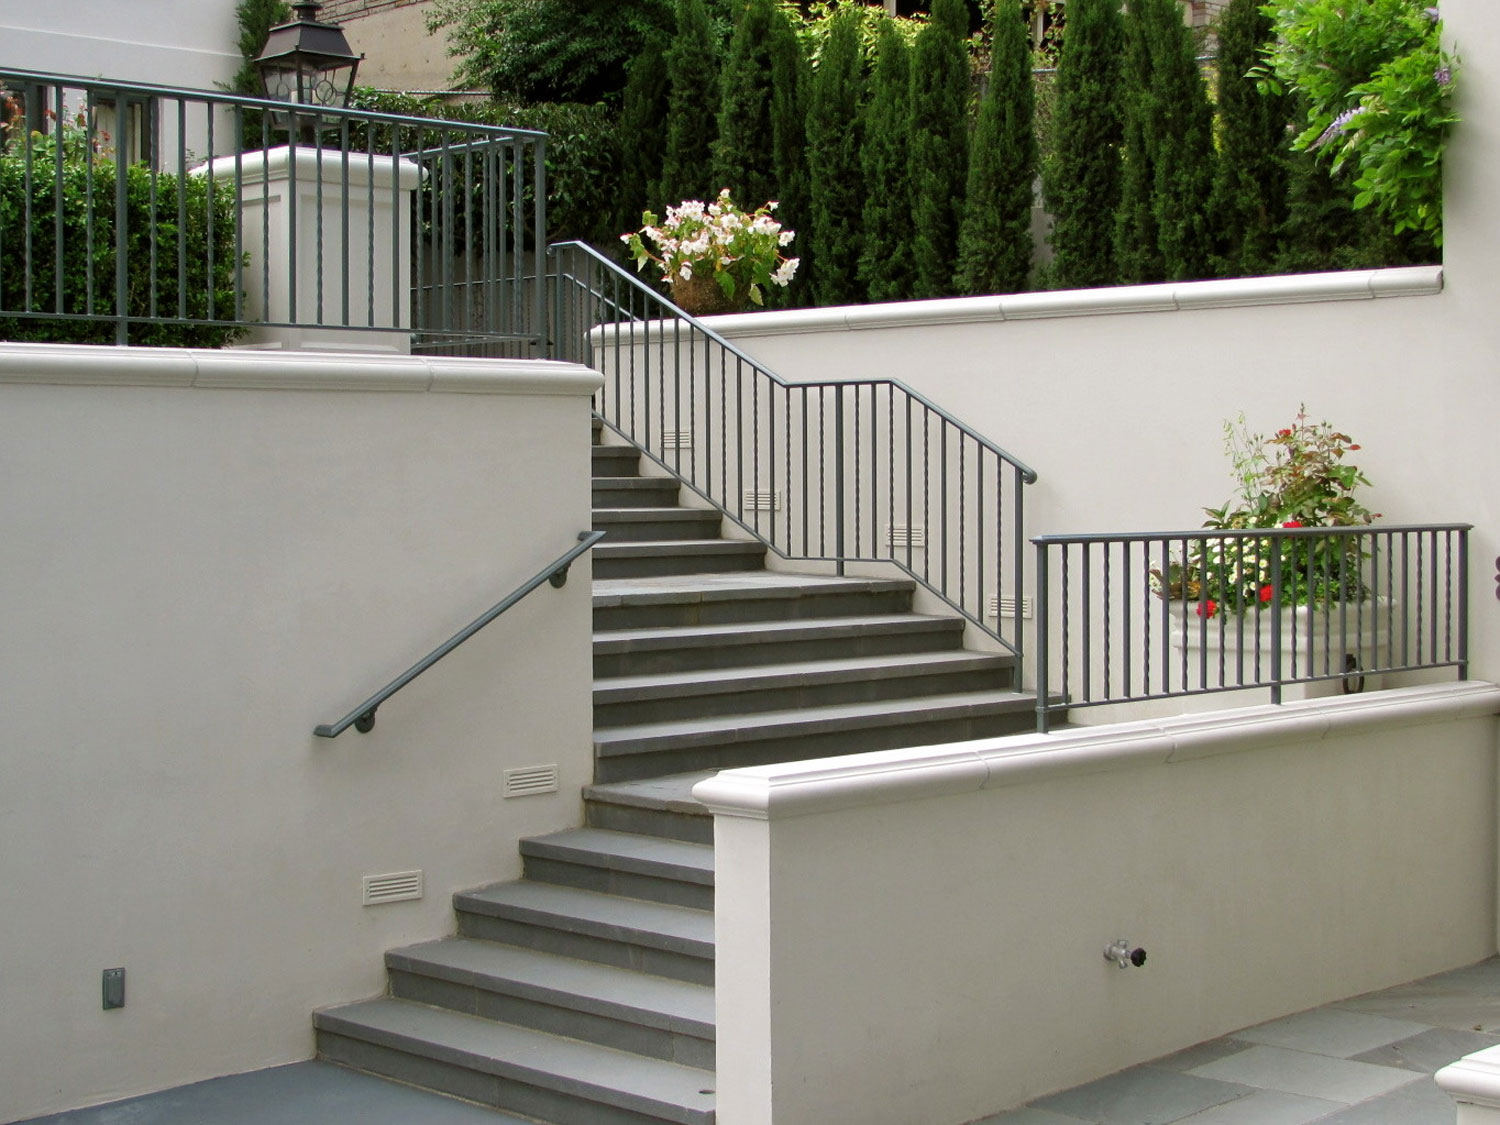 - Seattle, WAIron Handrails and Guardrails for Slate Patio - Turning Stairs